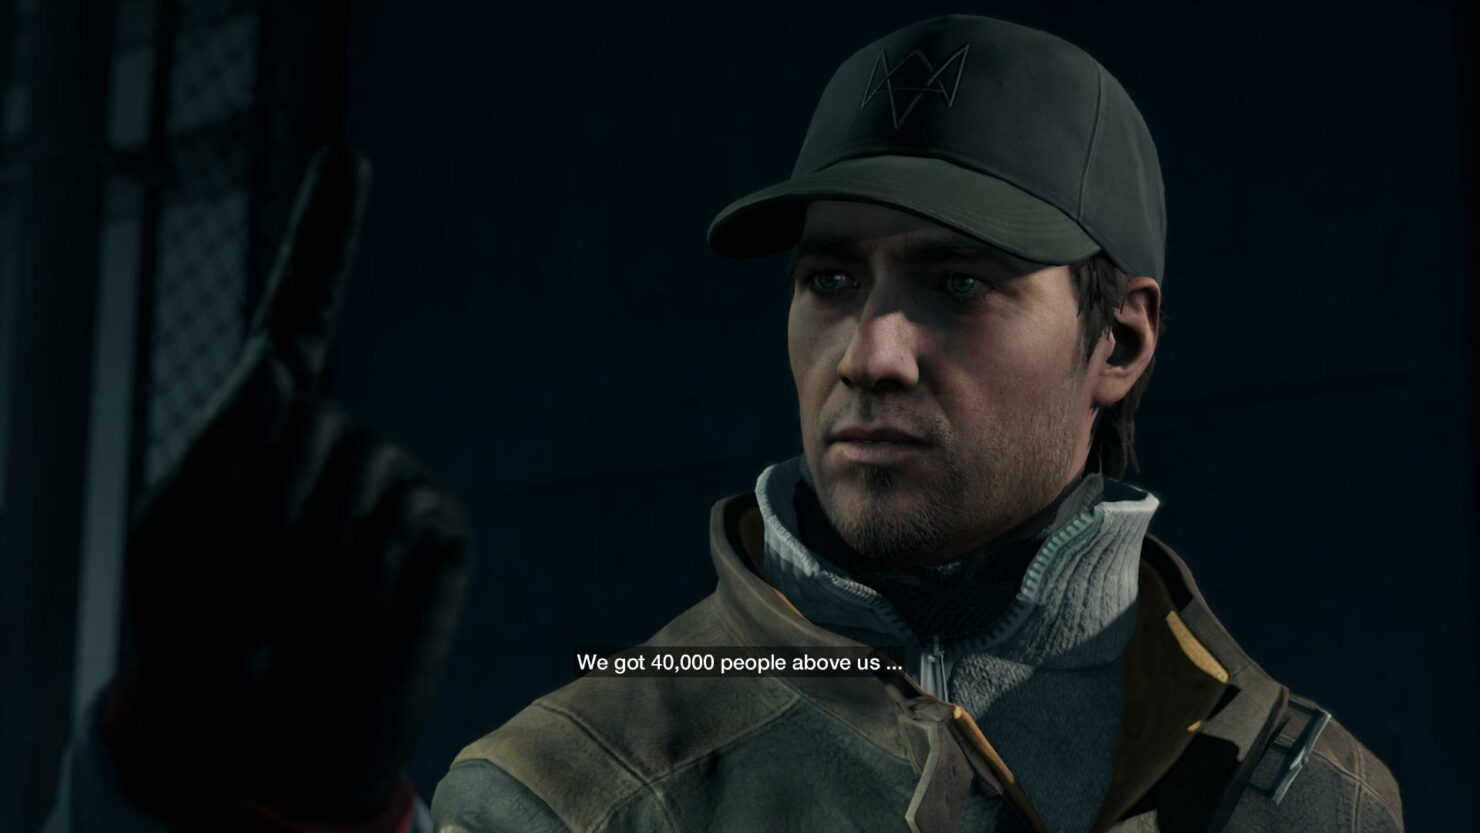 watch_dogs-2014-05-24-10-38-47-50